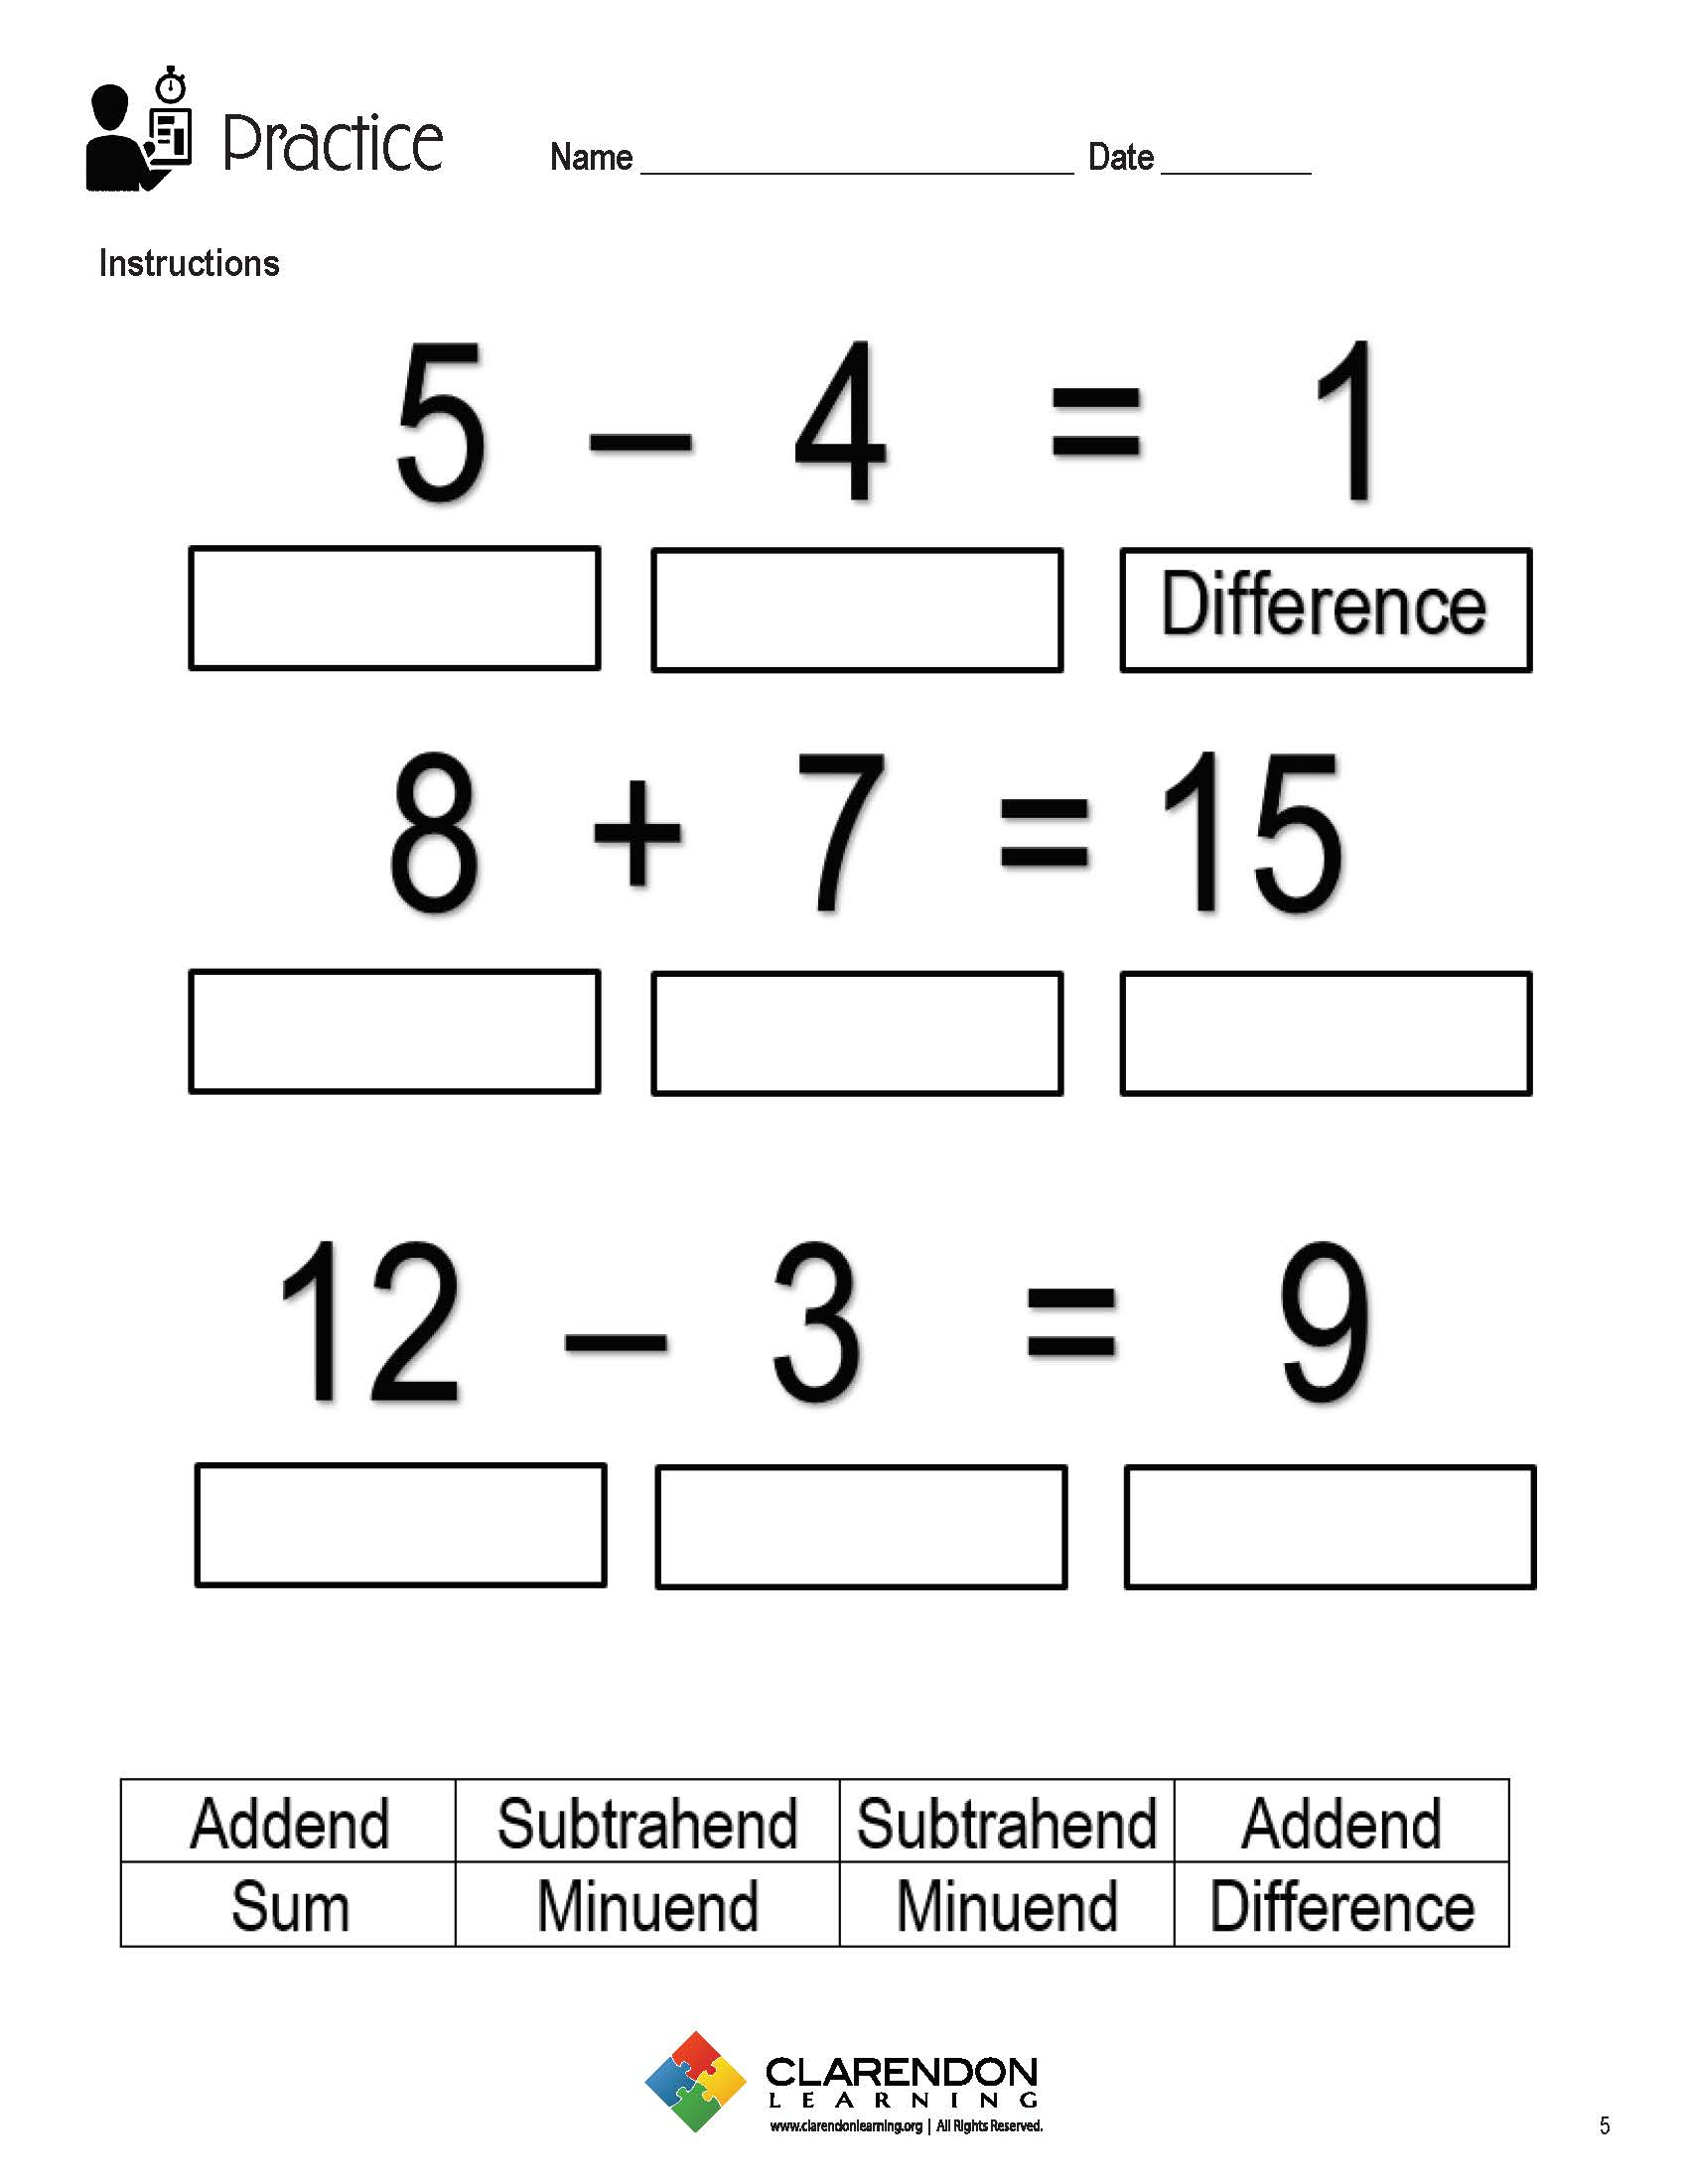 Addition and Subtraction Terms Lesson Plan | Clarendon Learning